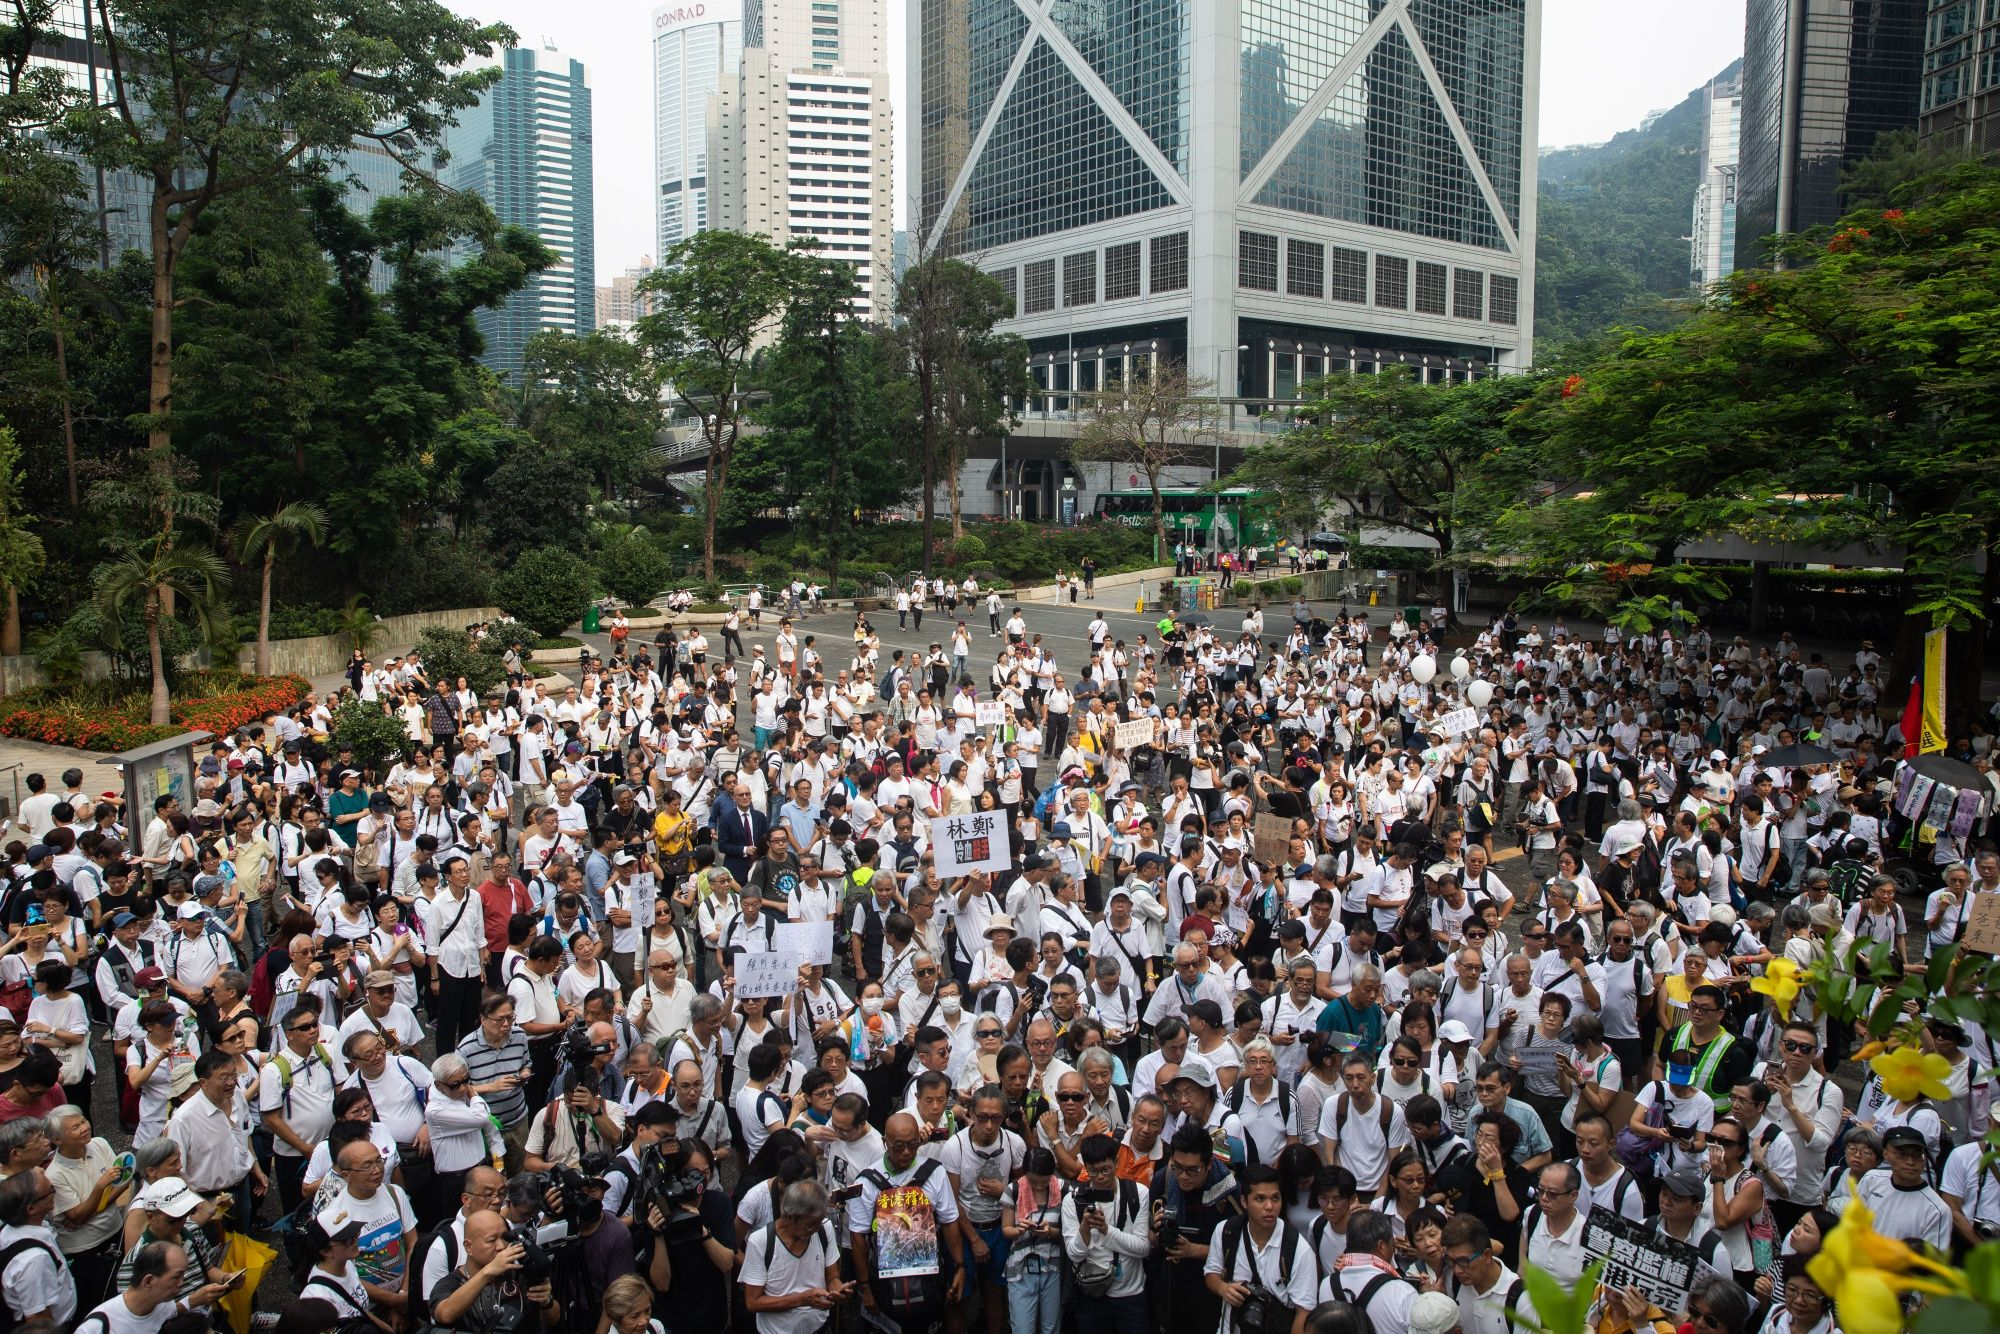 China Is Drafting Urgent Plan to Resolve Hong Kong Chaos, SCMP Says